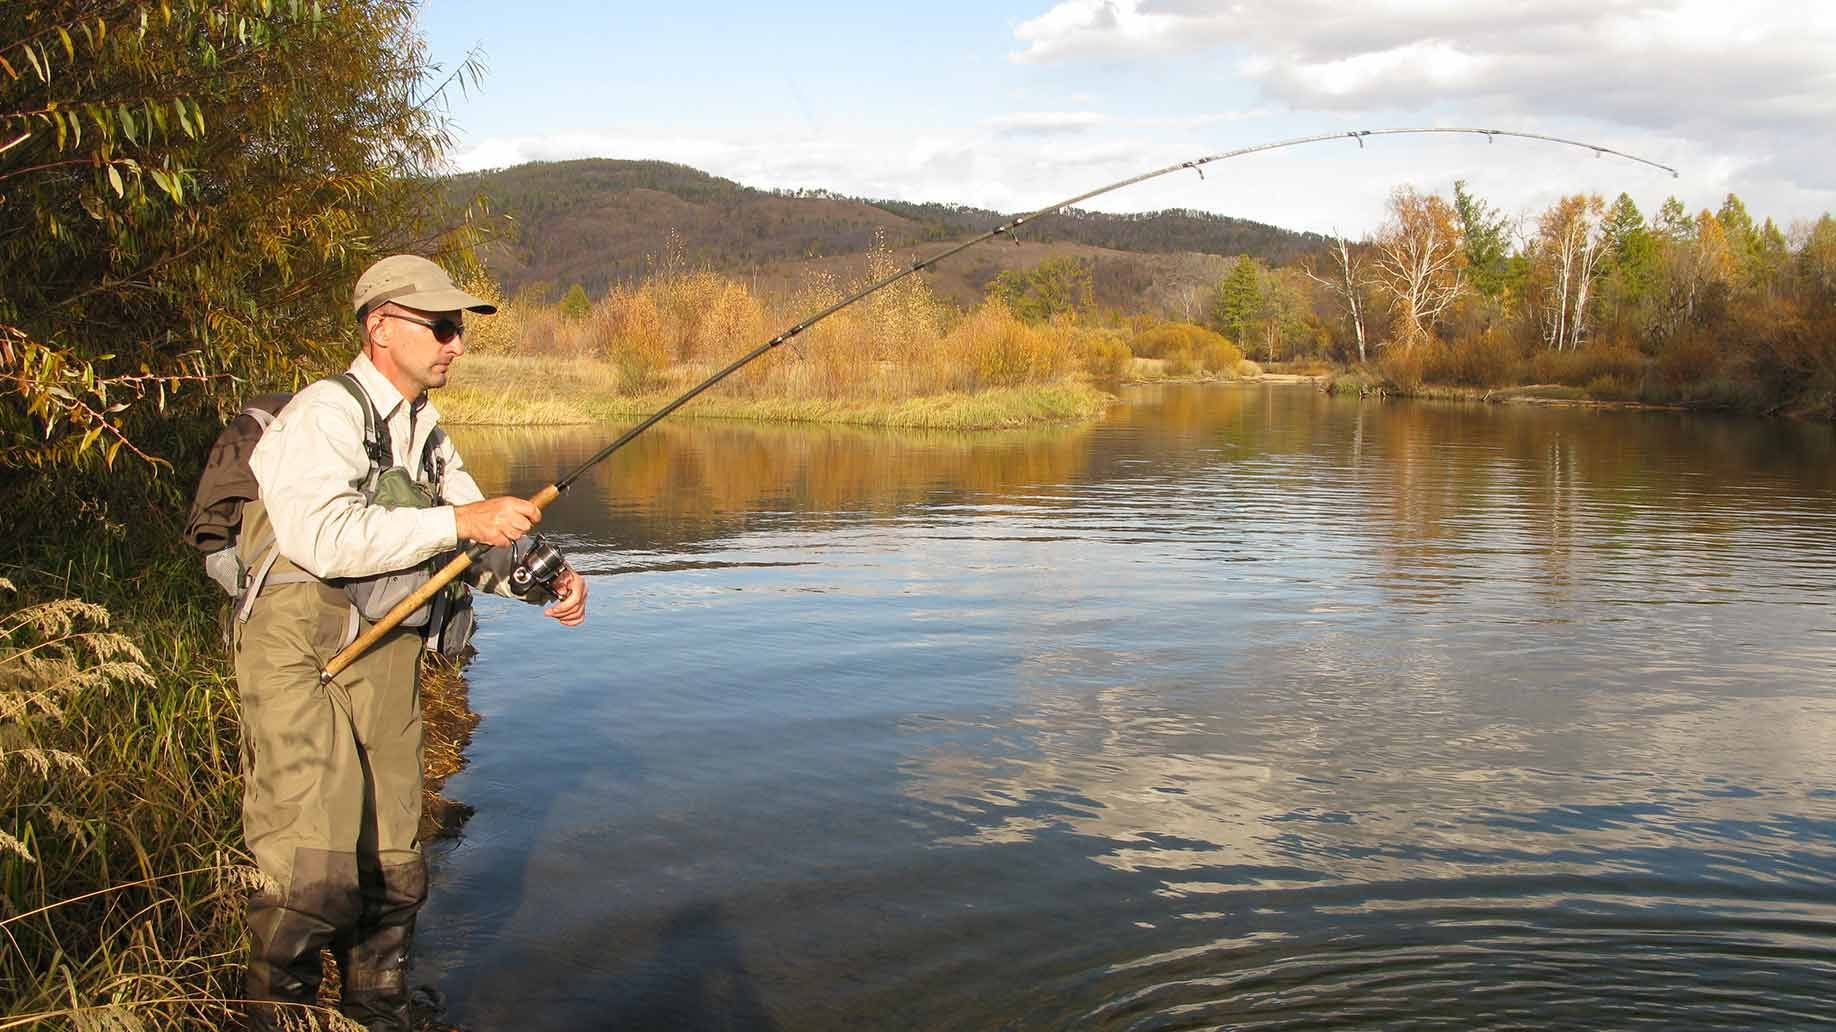 How Much Do Fly Fishing Lessons Cost Gear Equipment Prices Fly Fishing Lessons Fly Fishing Fishing Backpack